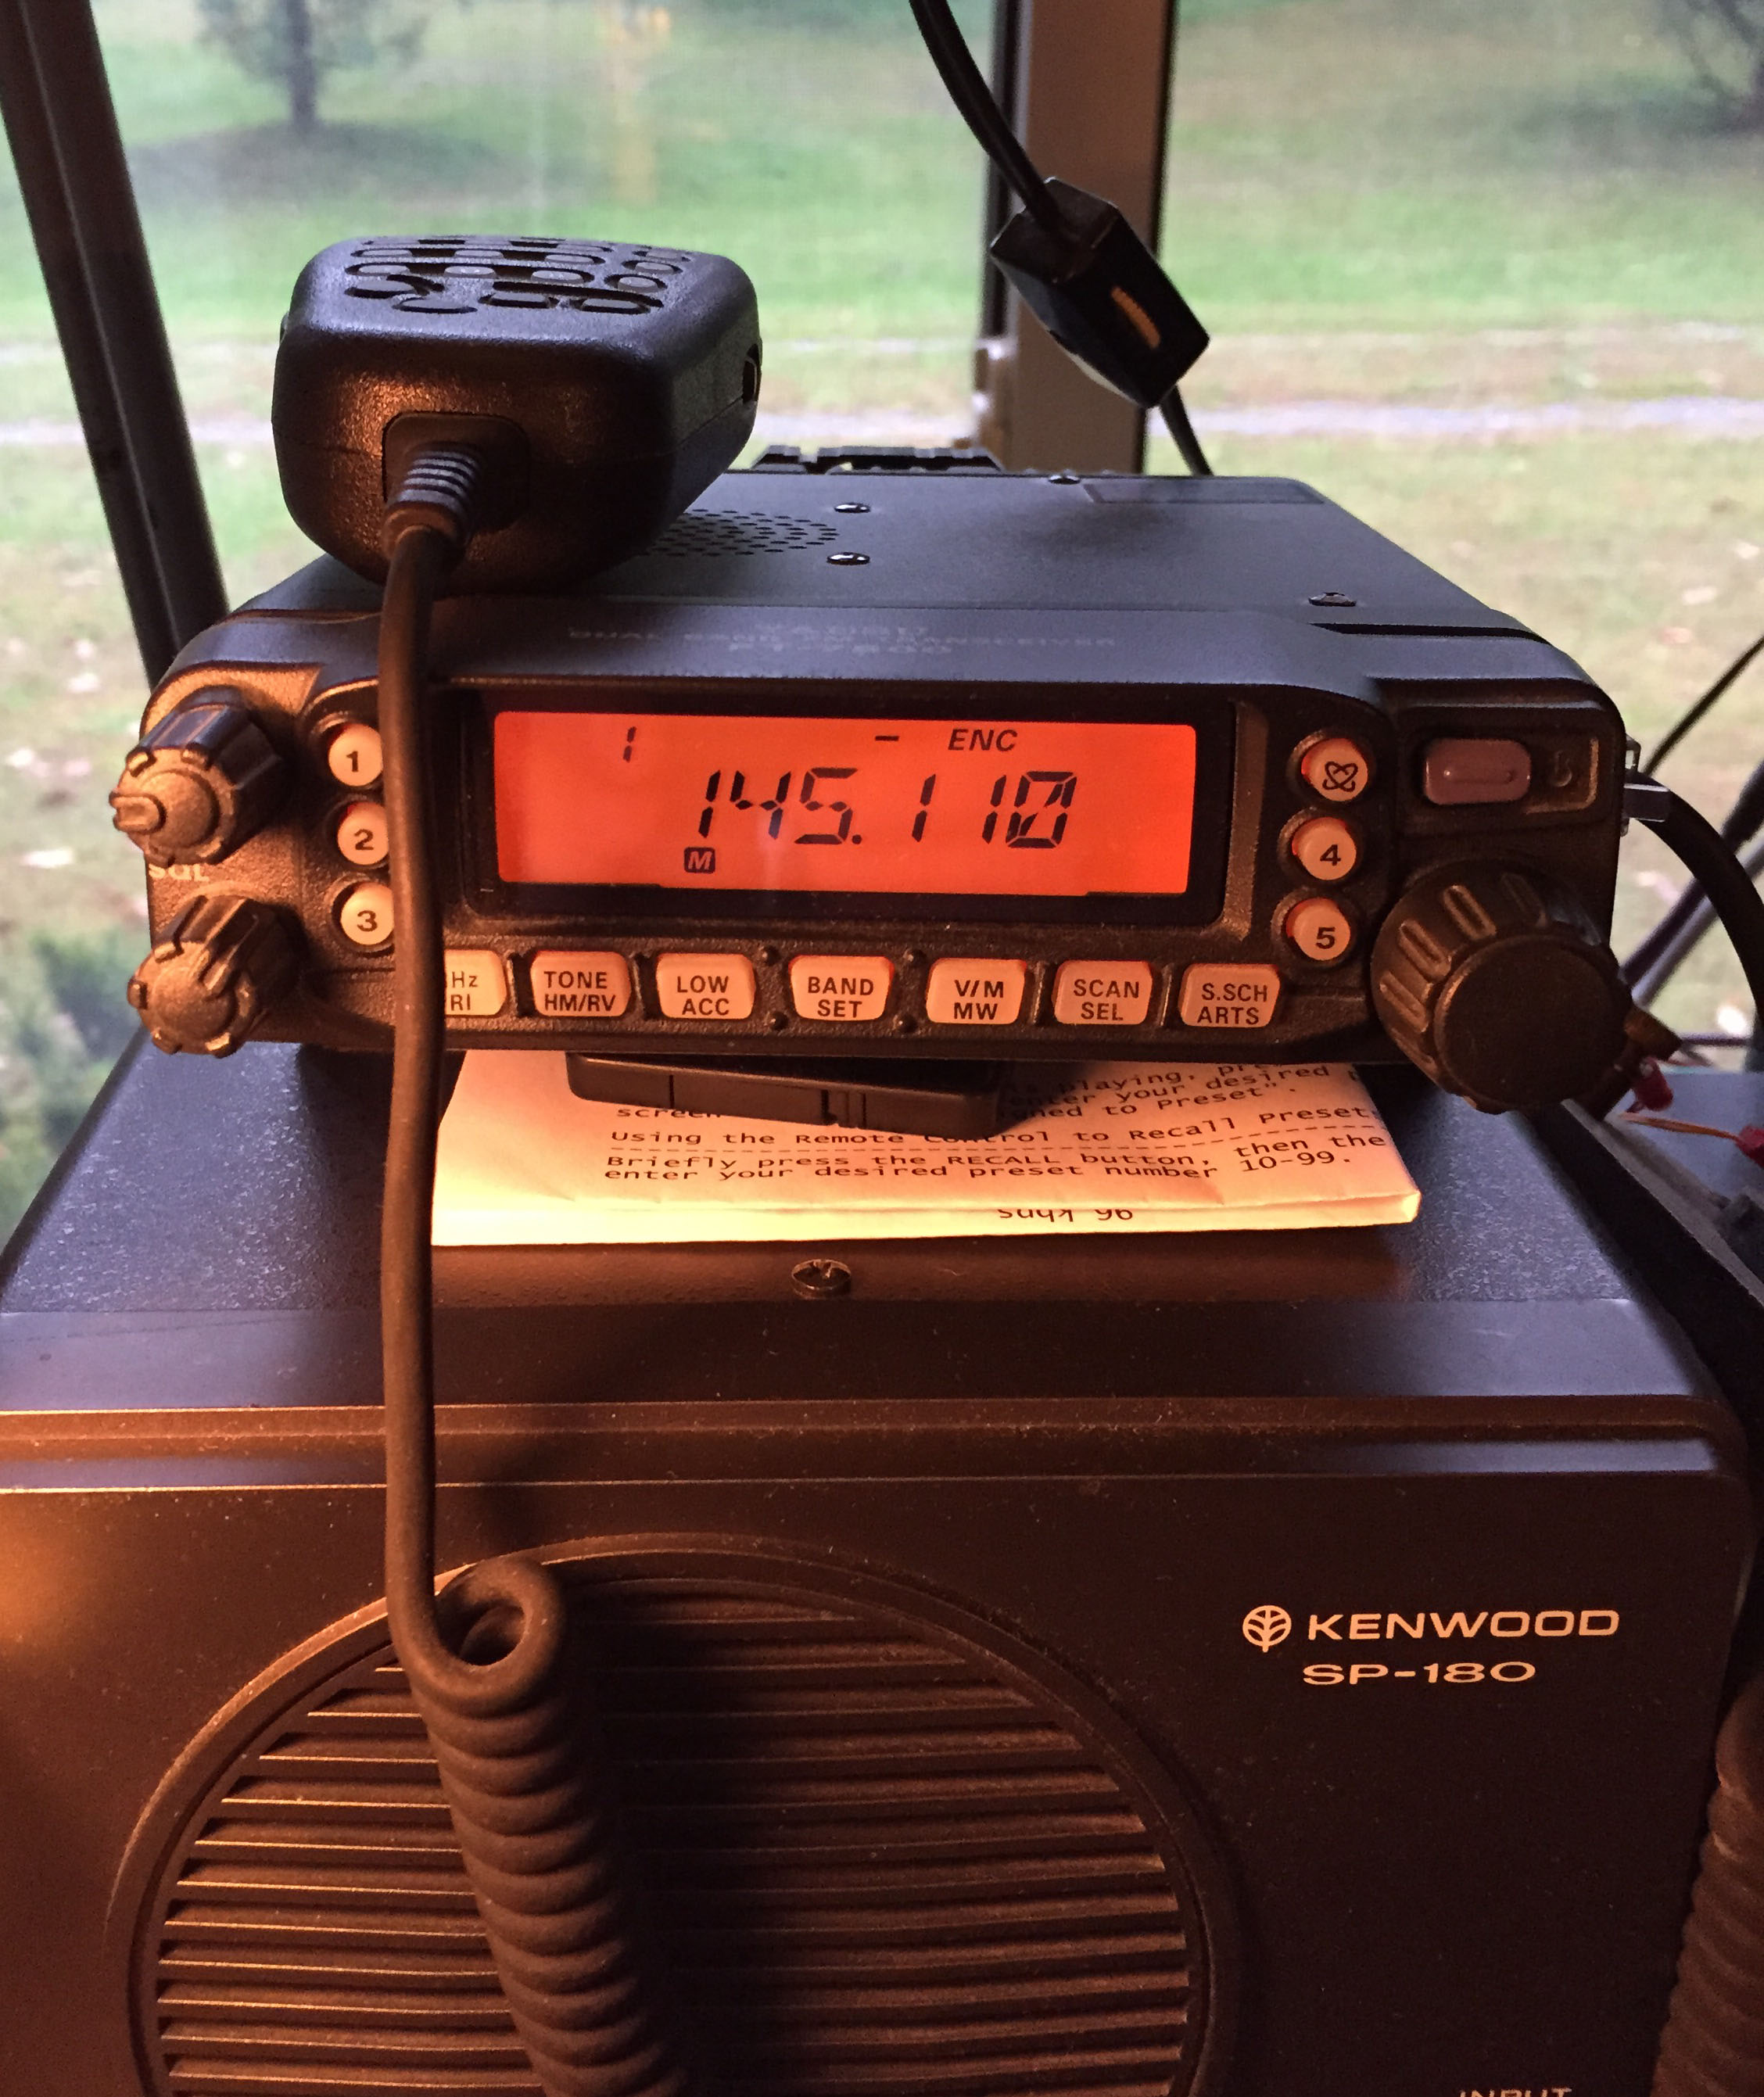 amateur radio station nawa yaesu ft 7800r dual band 2 meter 70 centimeter fm transceiver original photo 18